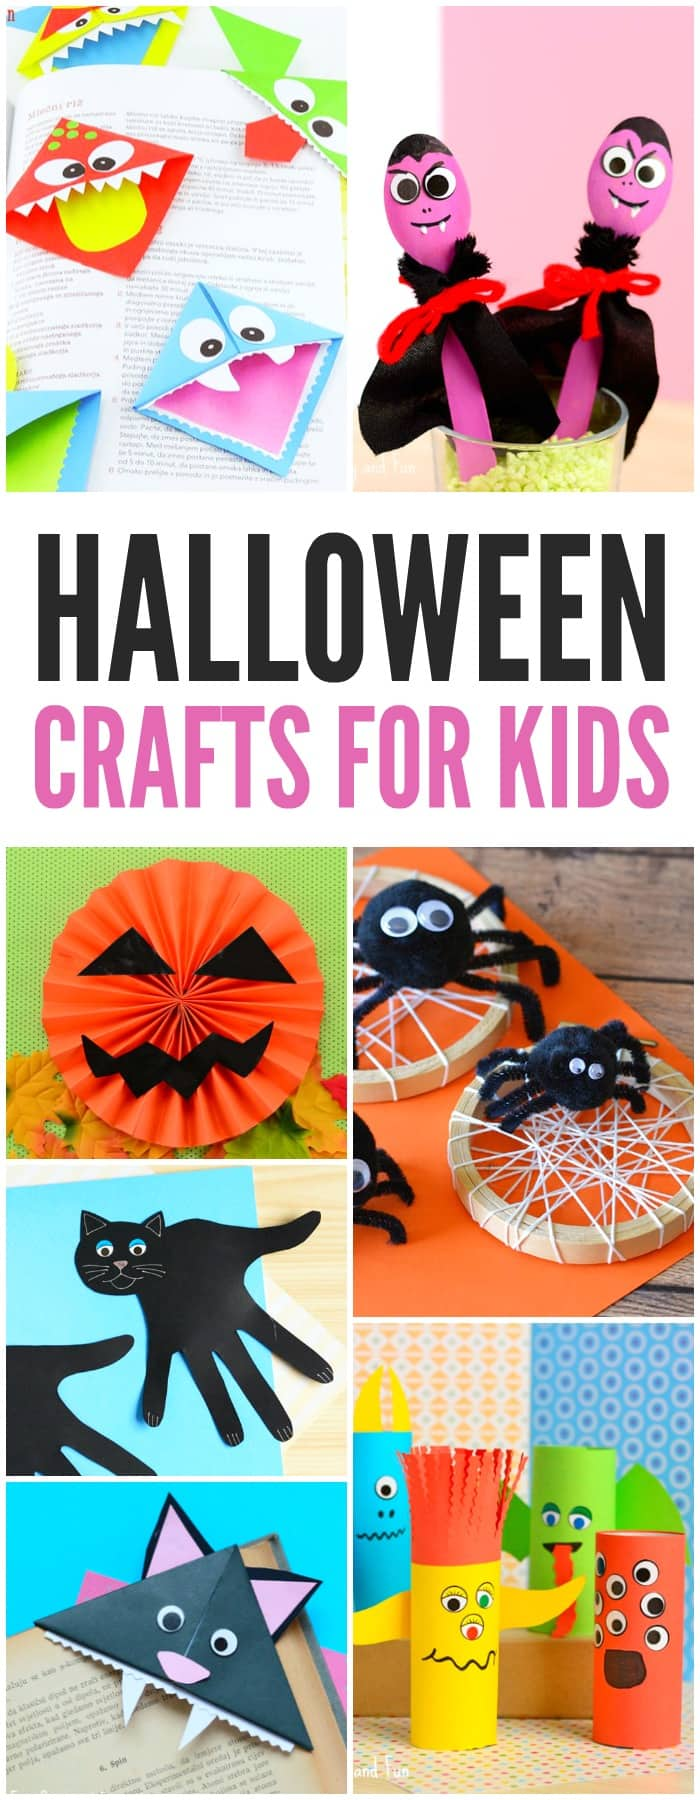 25 Halloween Crafts for Kids Art and Craft Tutorials